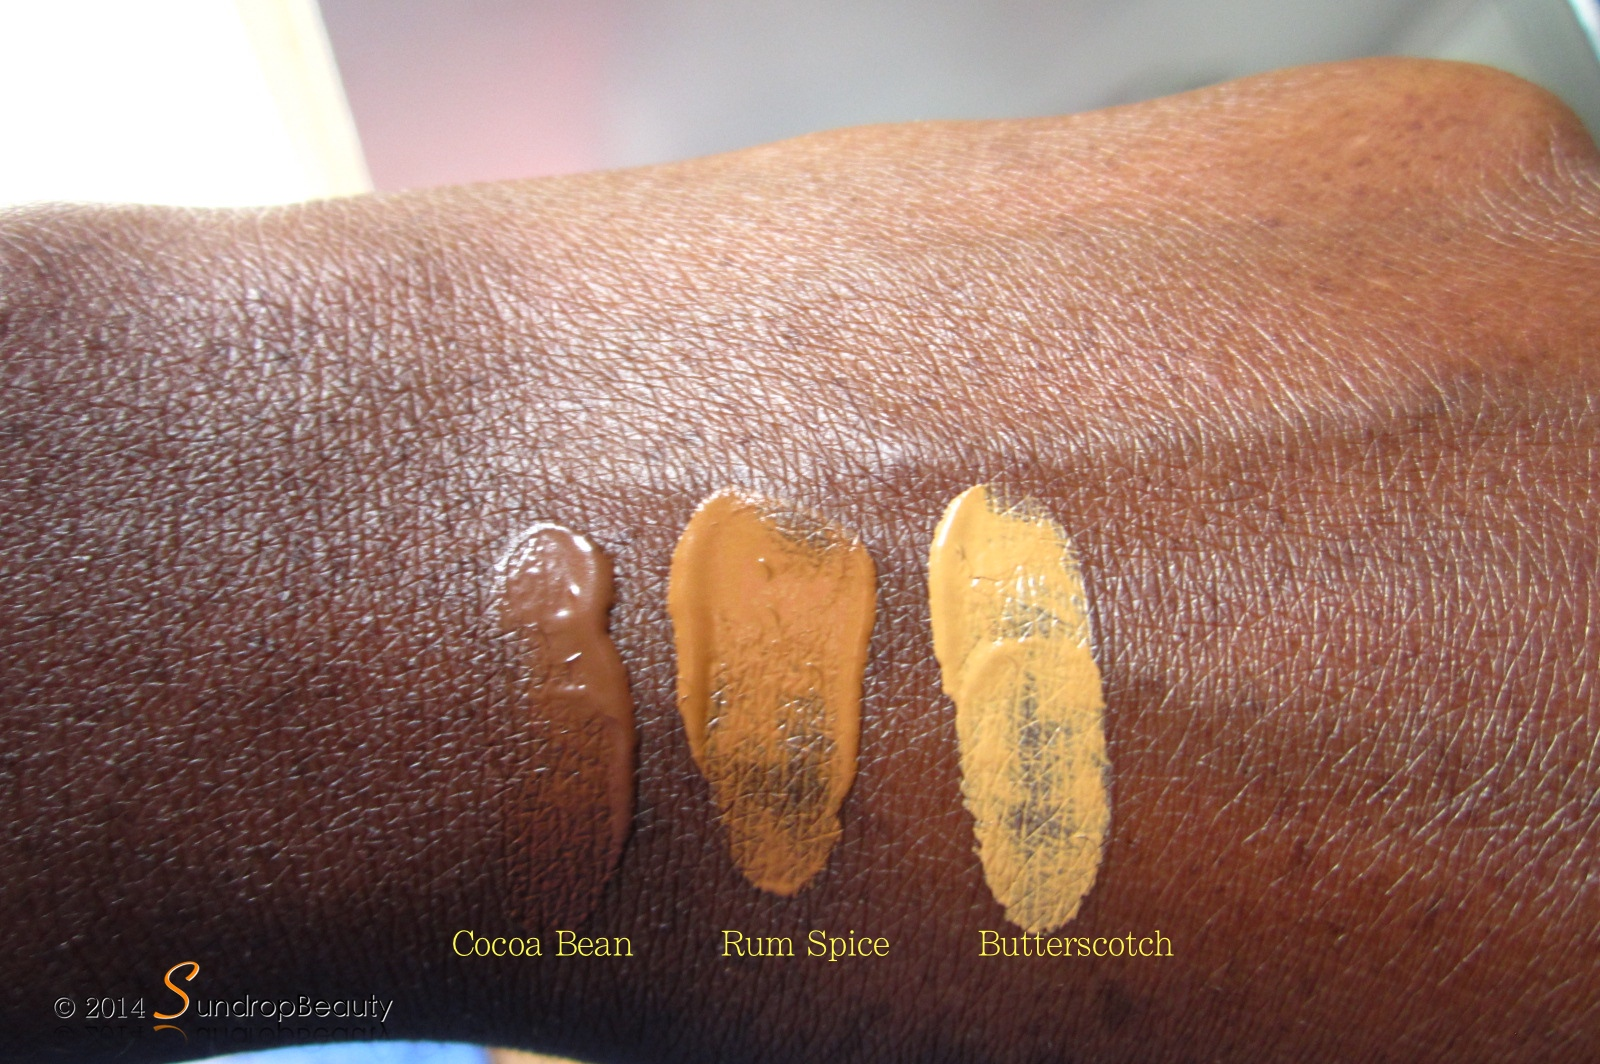 Black Radiance Foundation Swatch Sundropbeauty